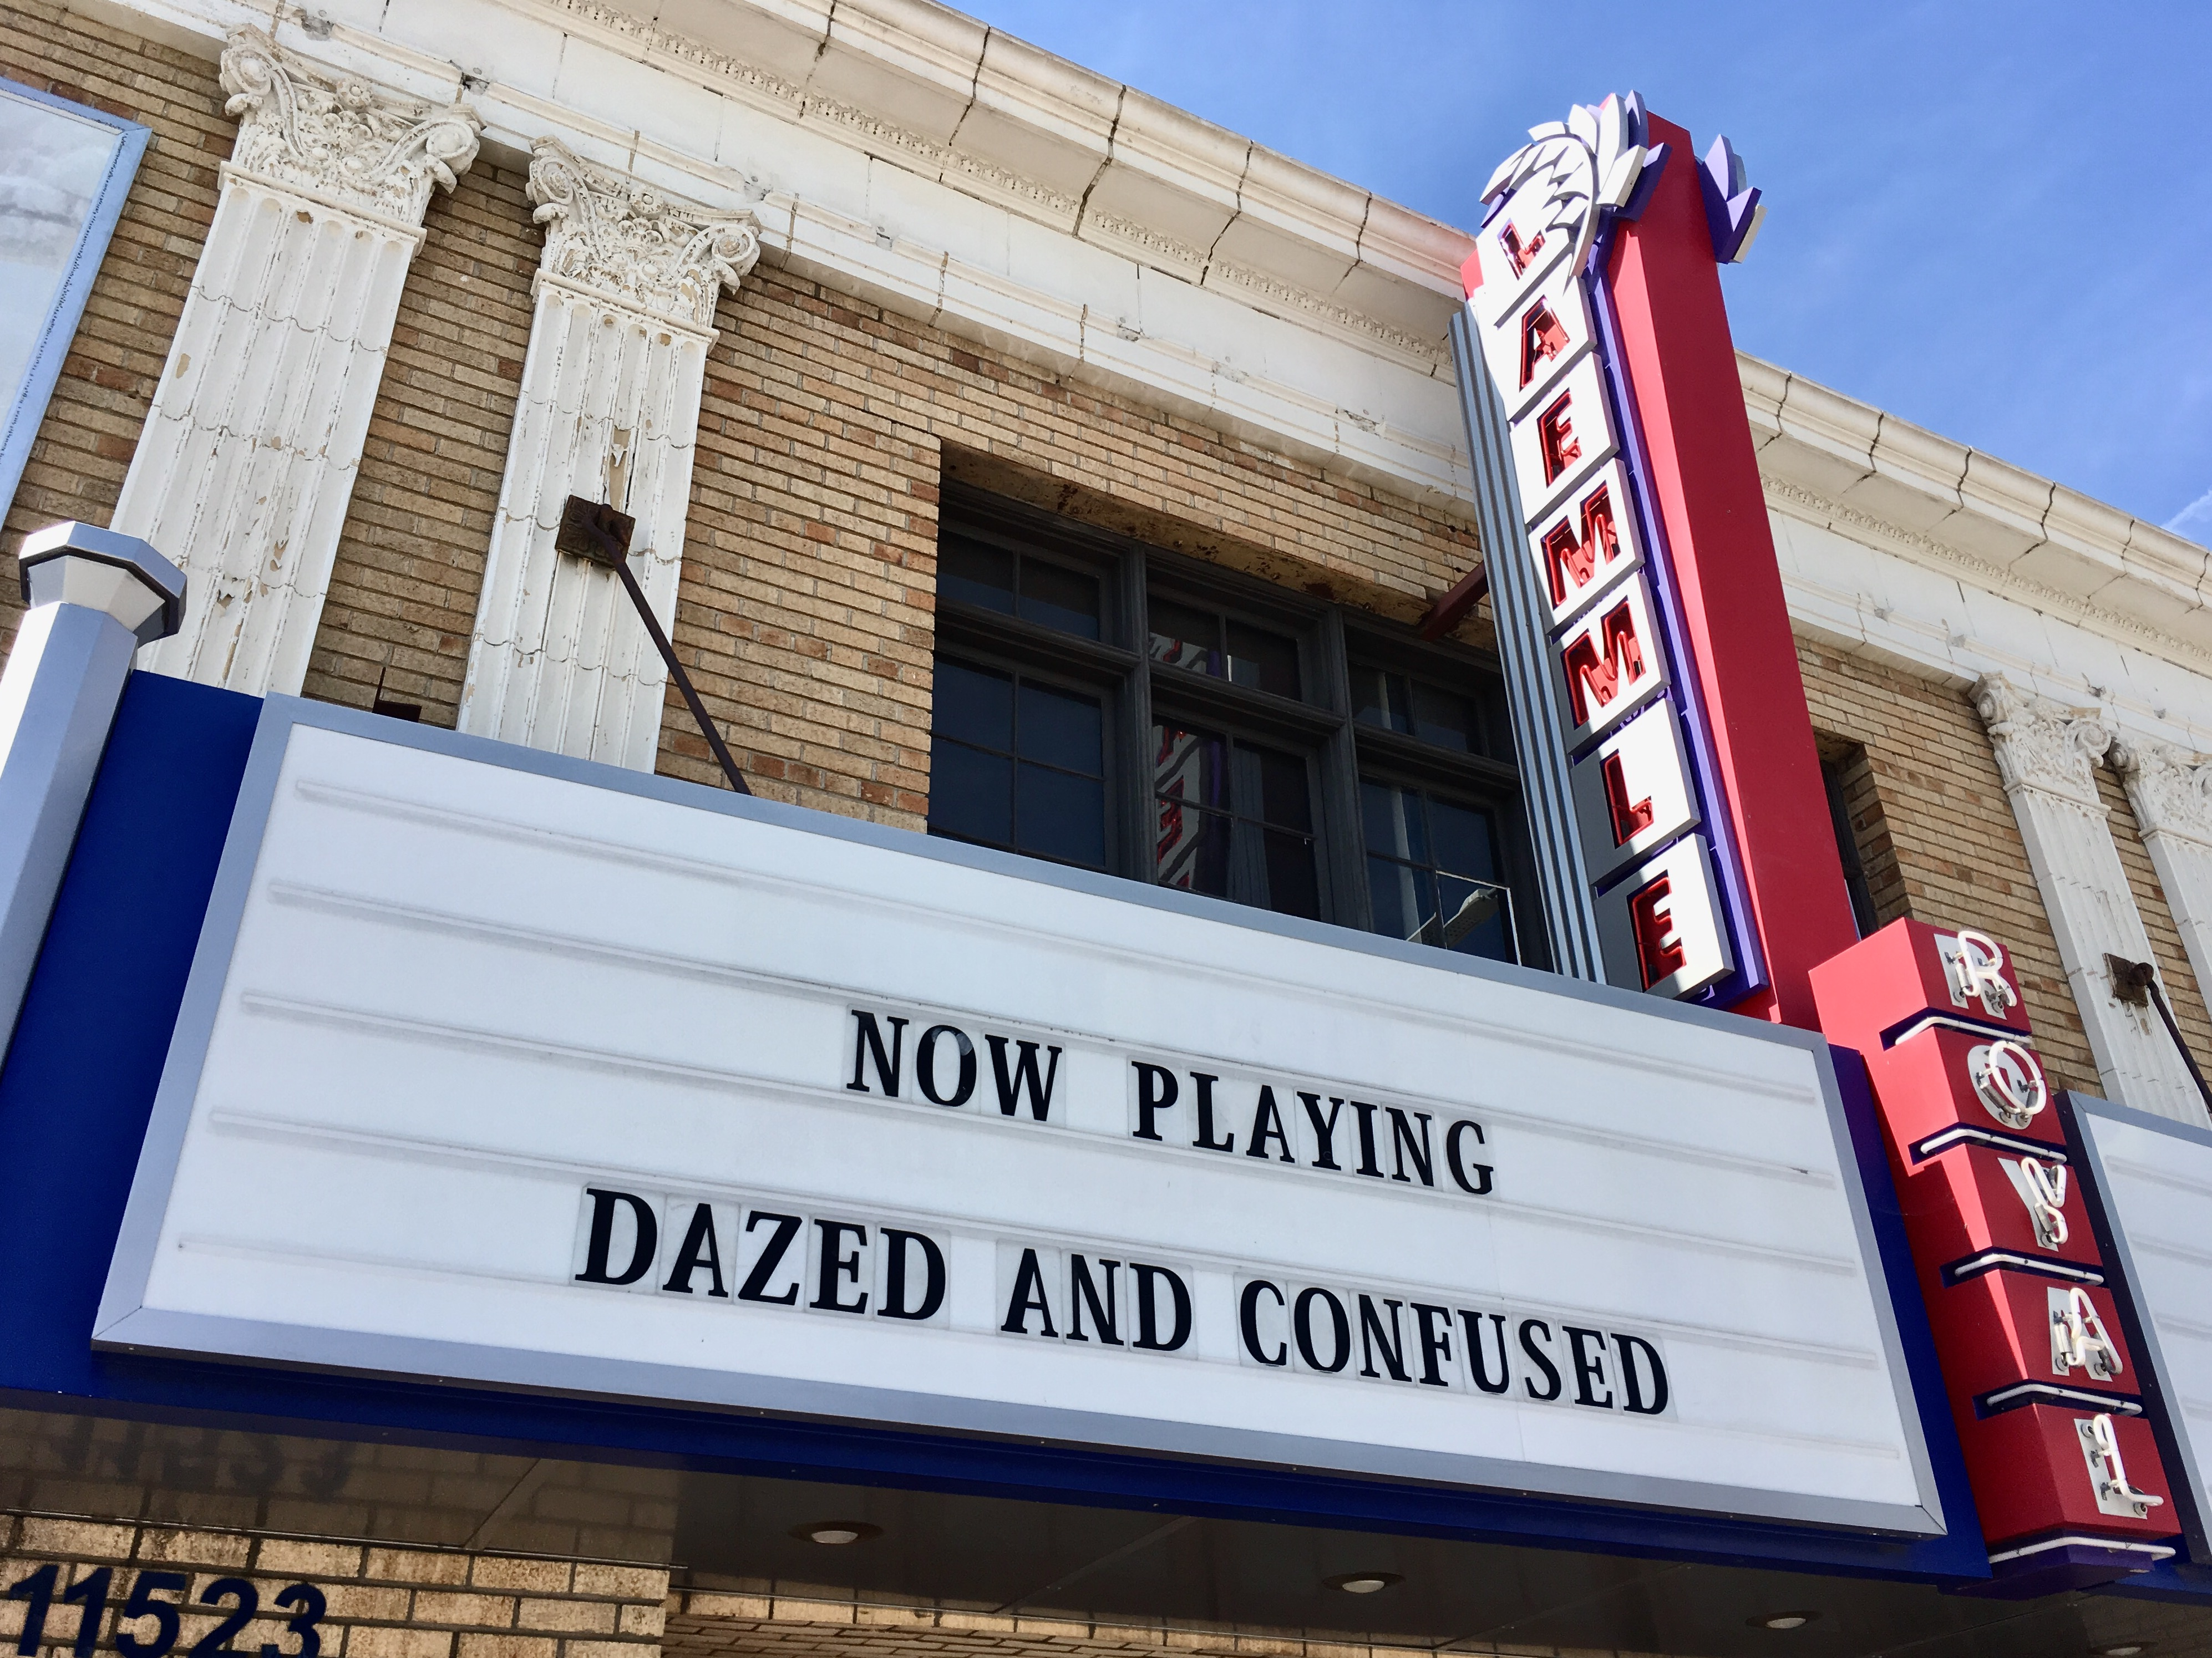 Dazed and Confused marquee